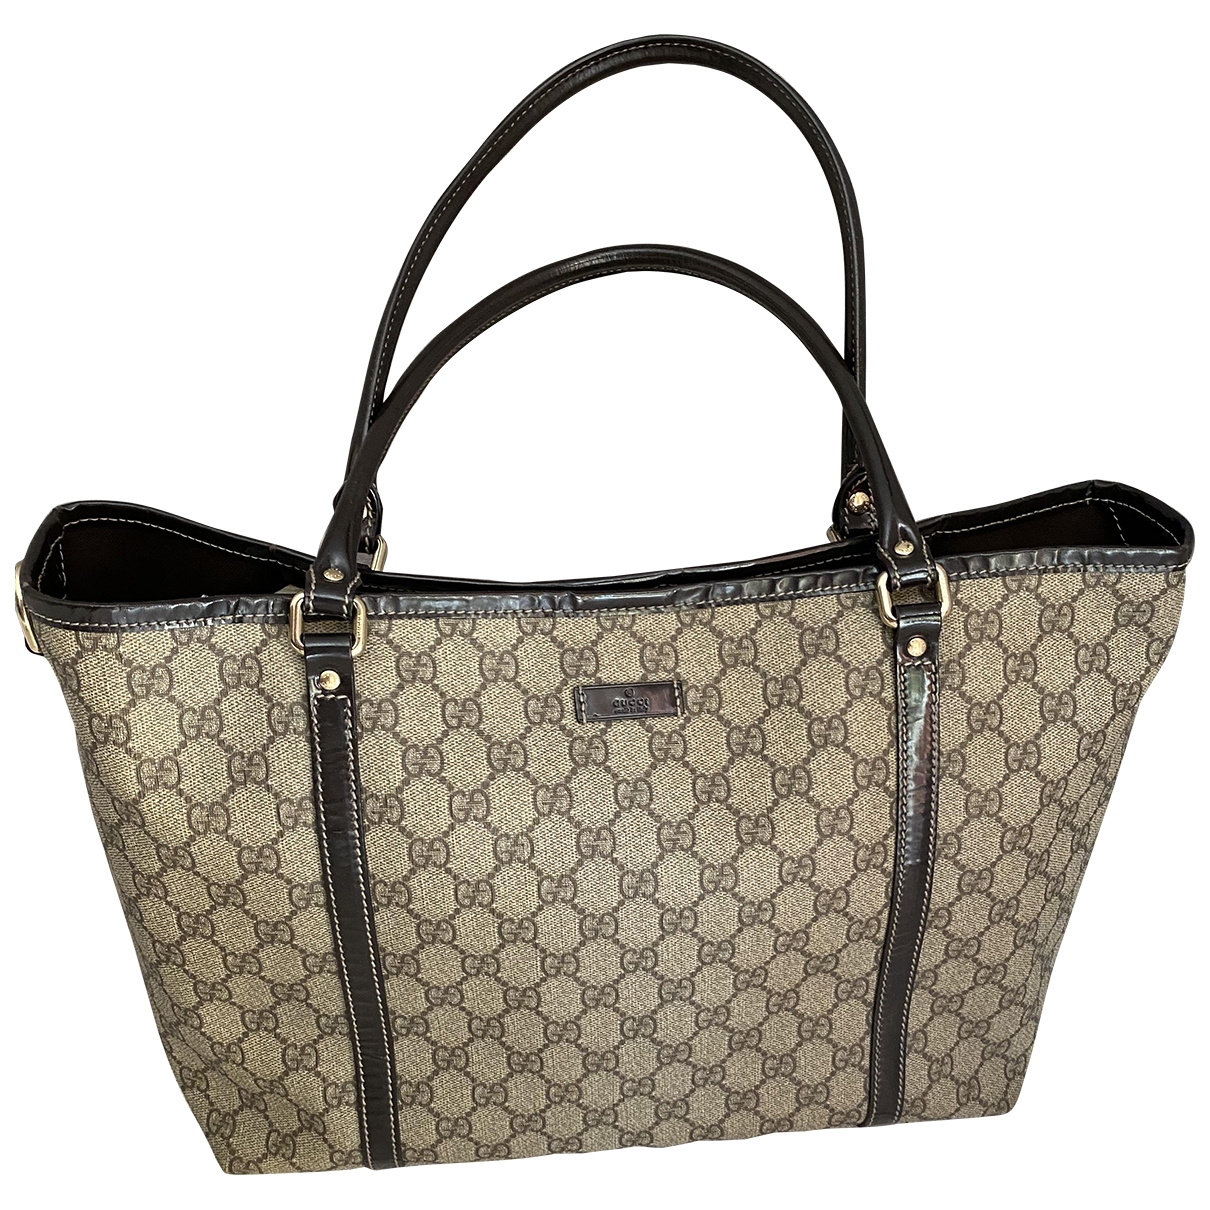 Gucci \N Cloth handbag for Women \N